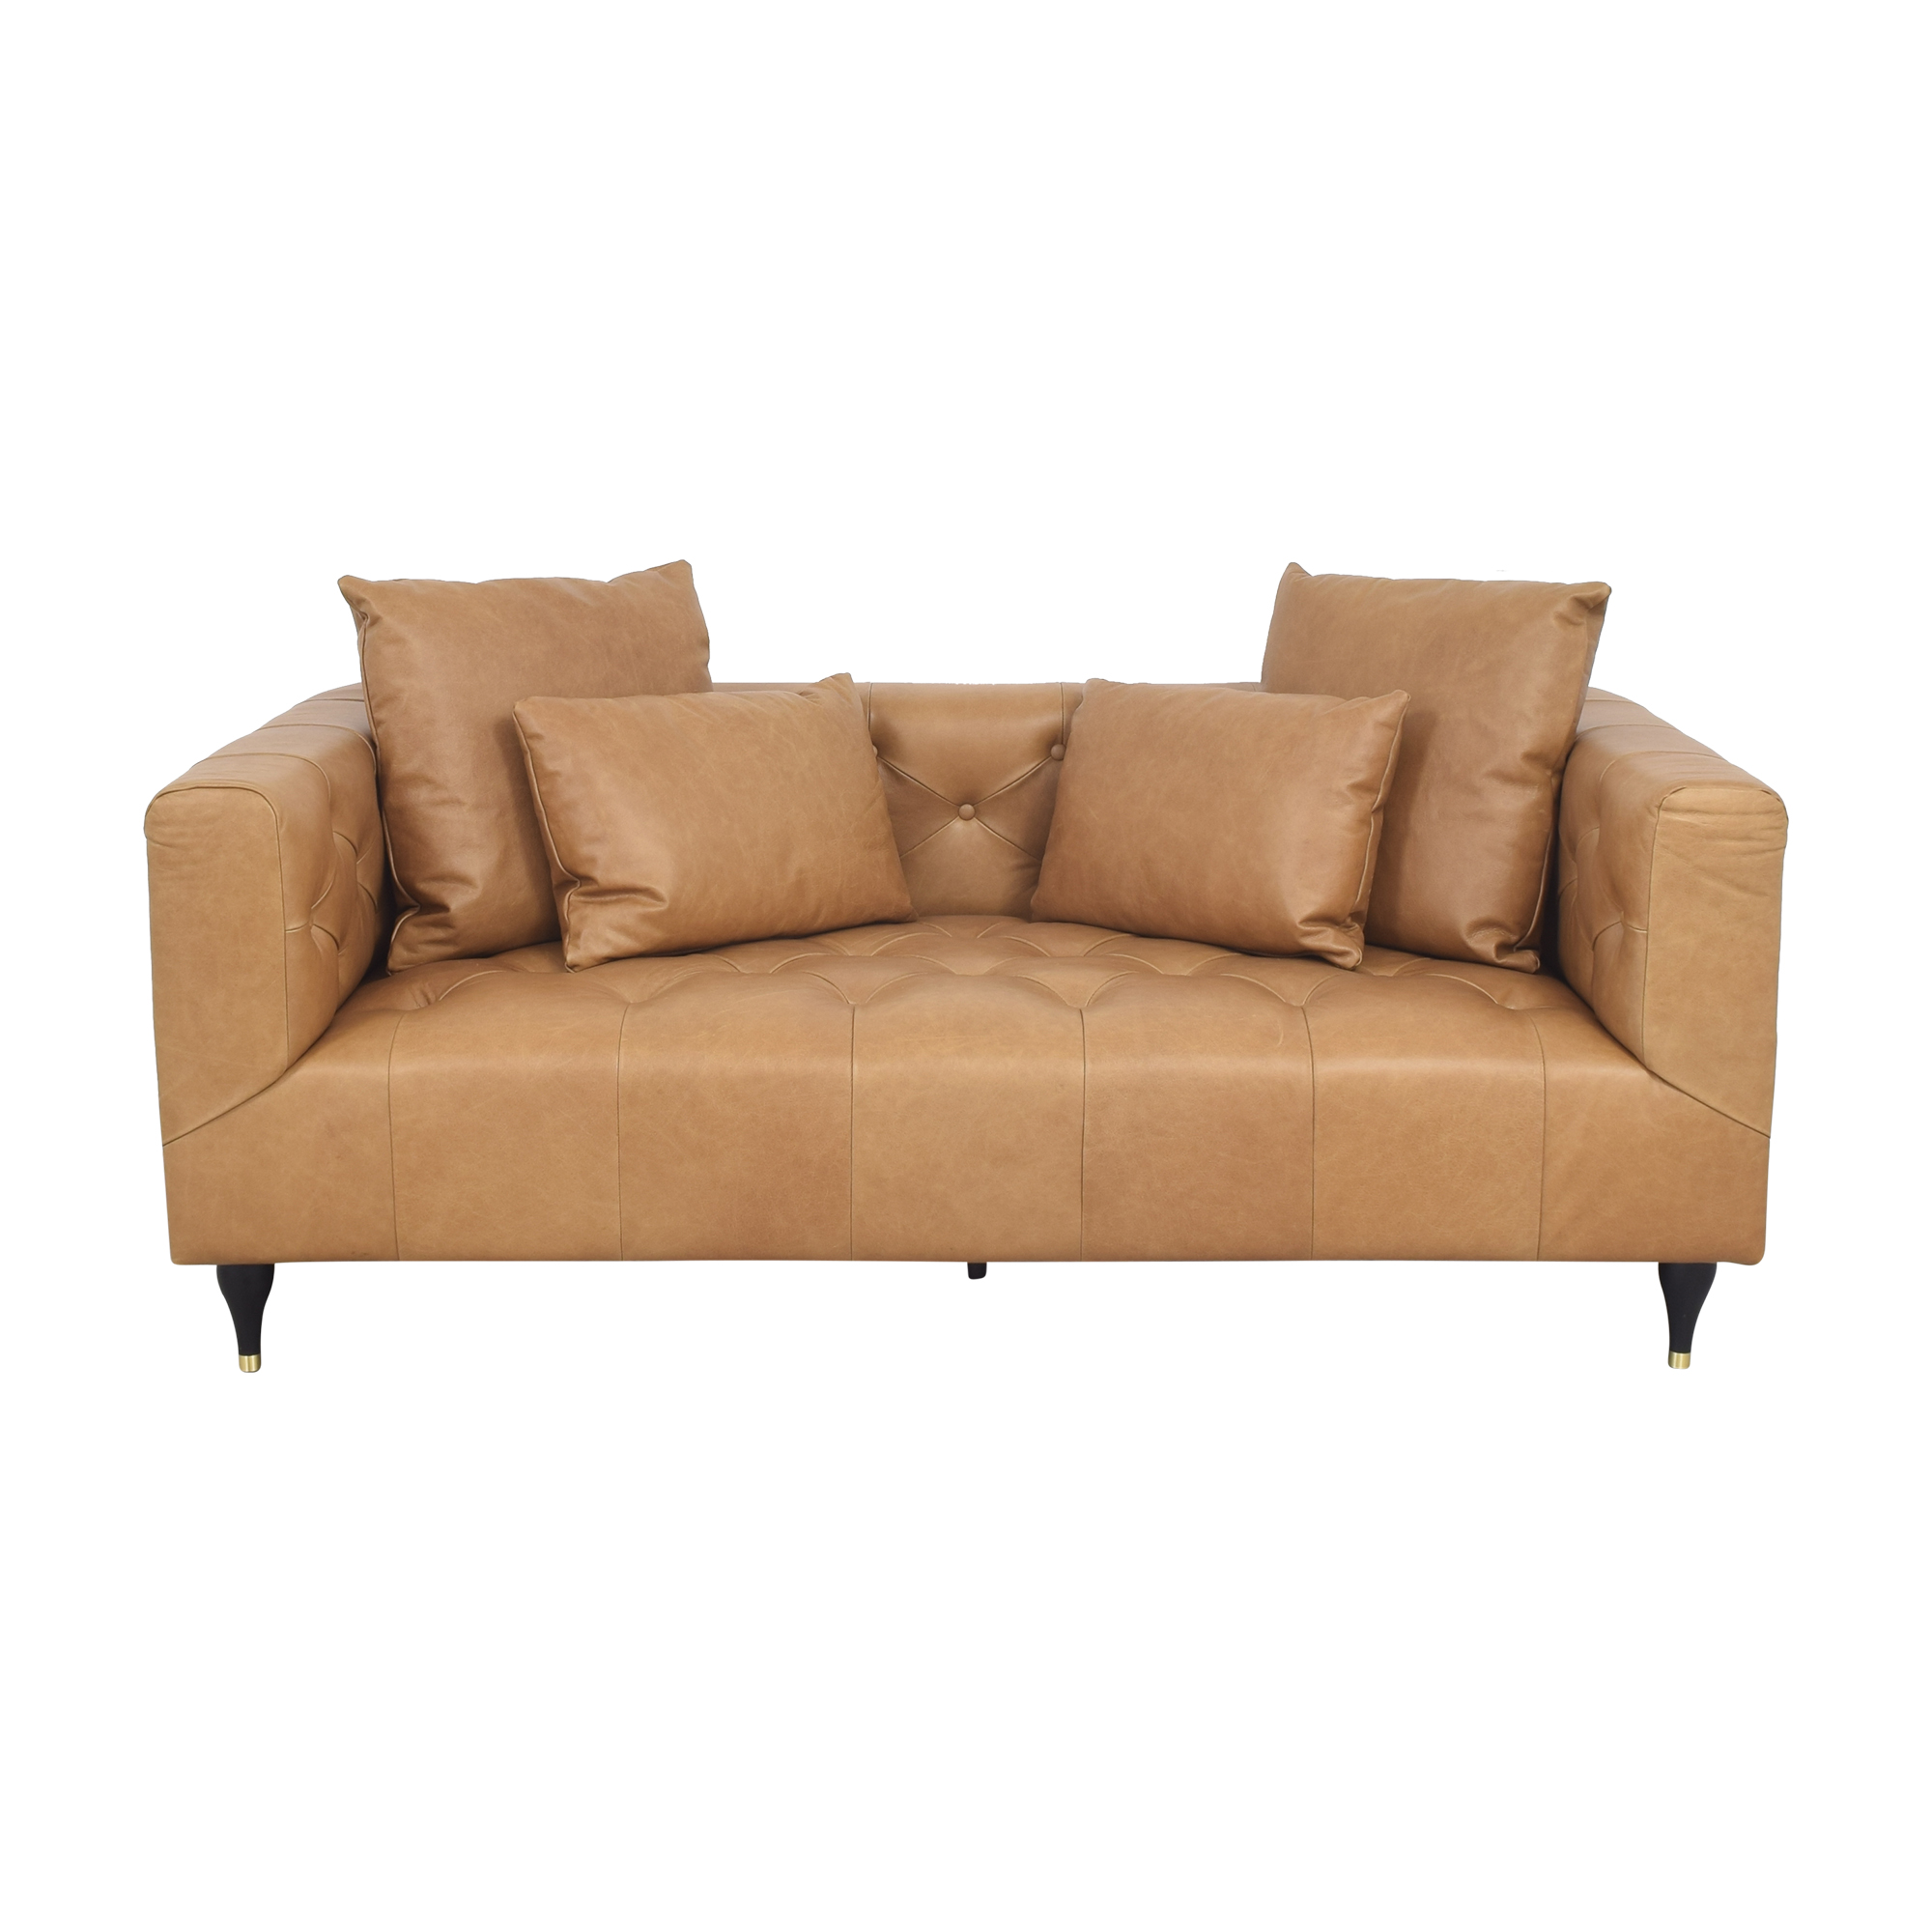 Interior Define Interior Define Ms. Chesterfield Tufted Sofa pa